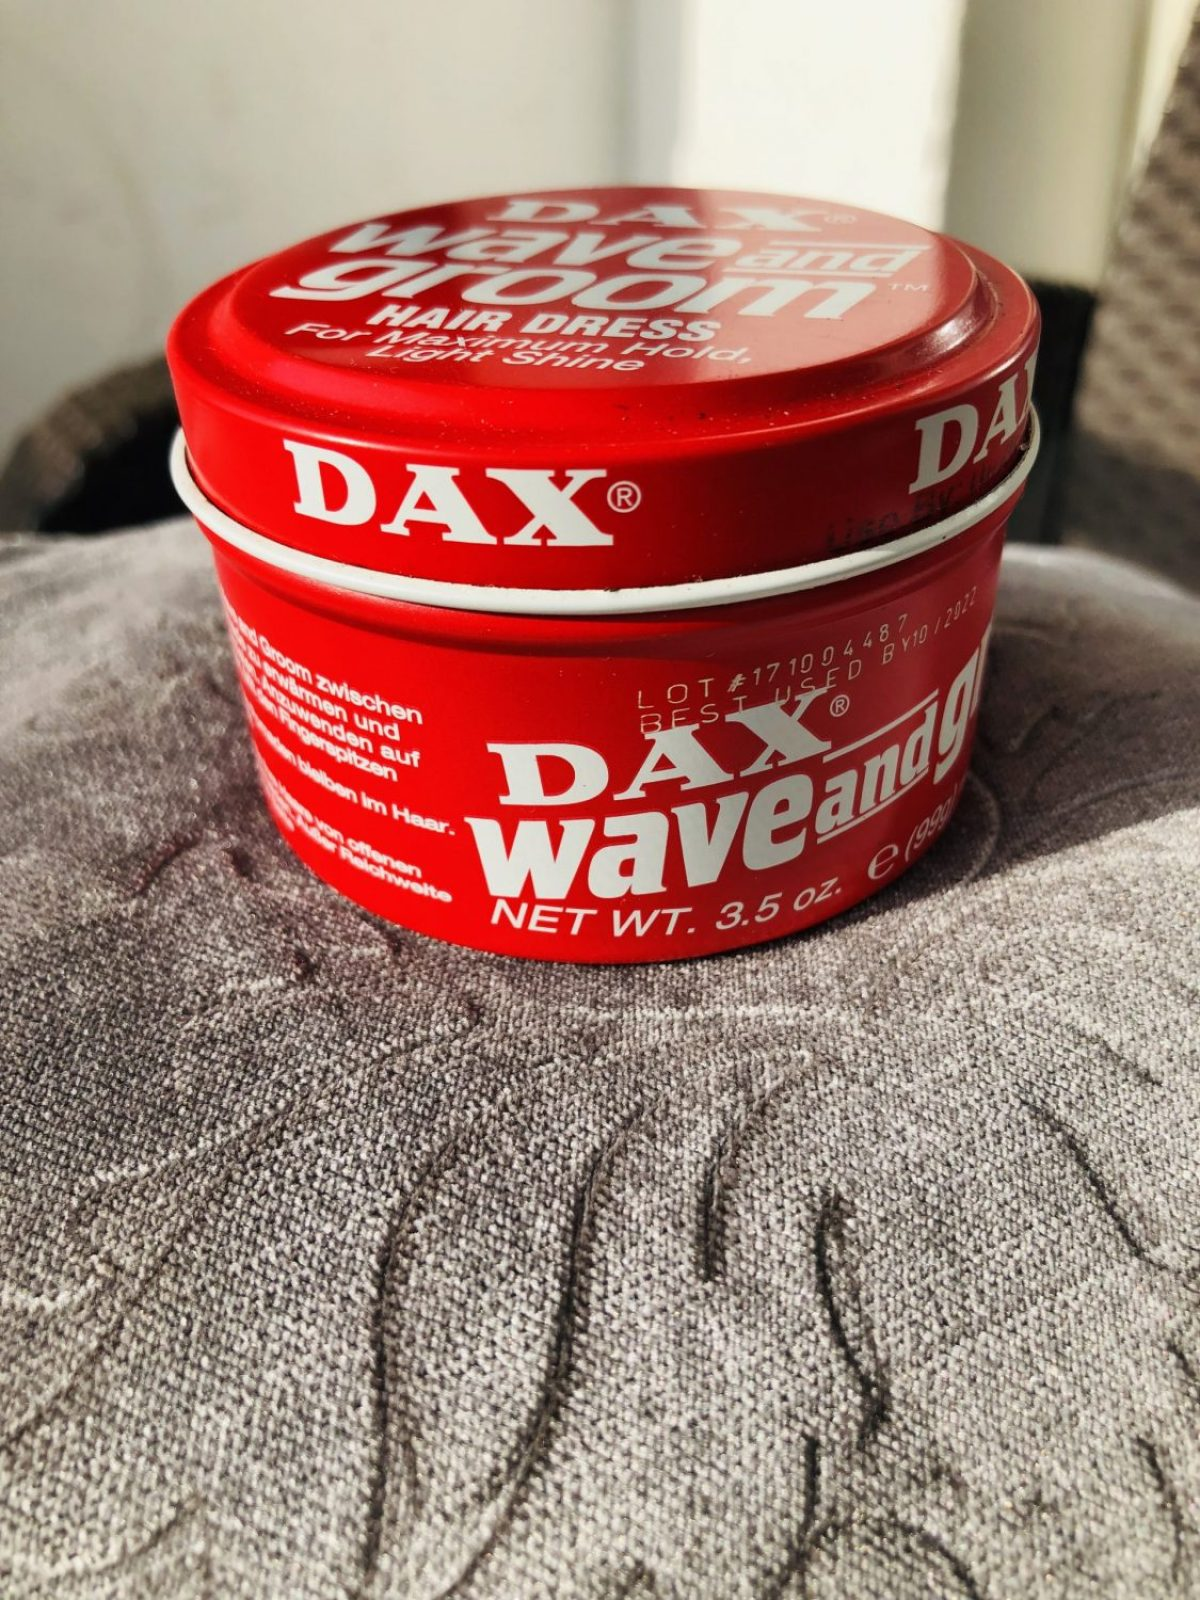 The Men S Corner How To Achieve Waves With A Durag